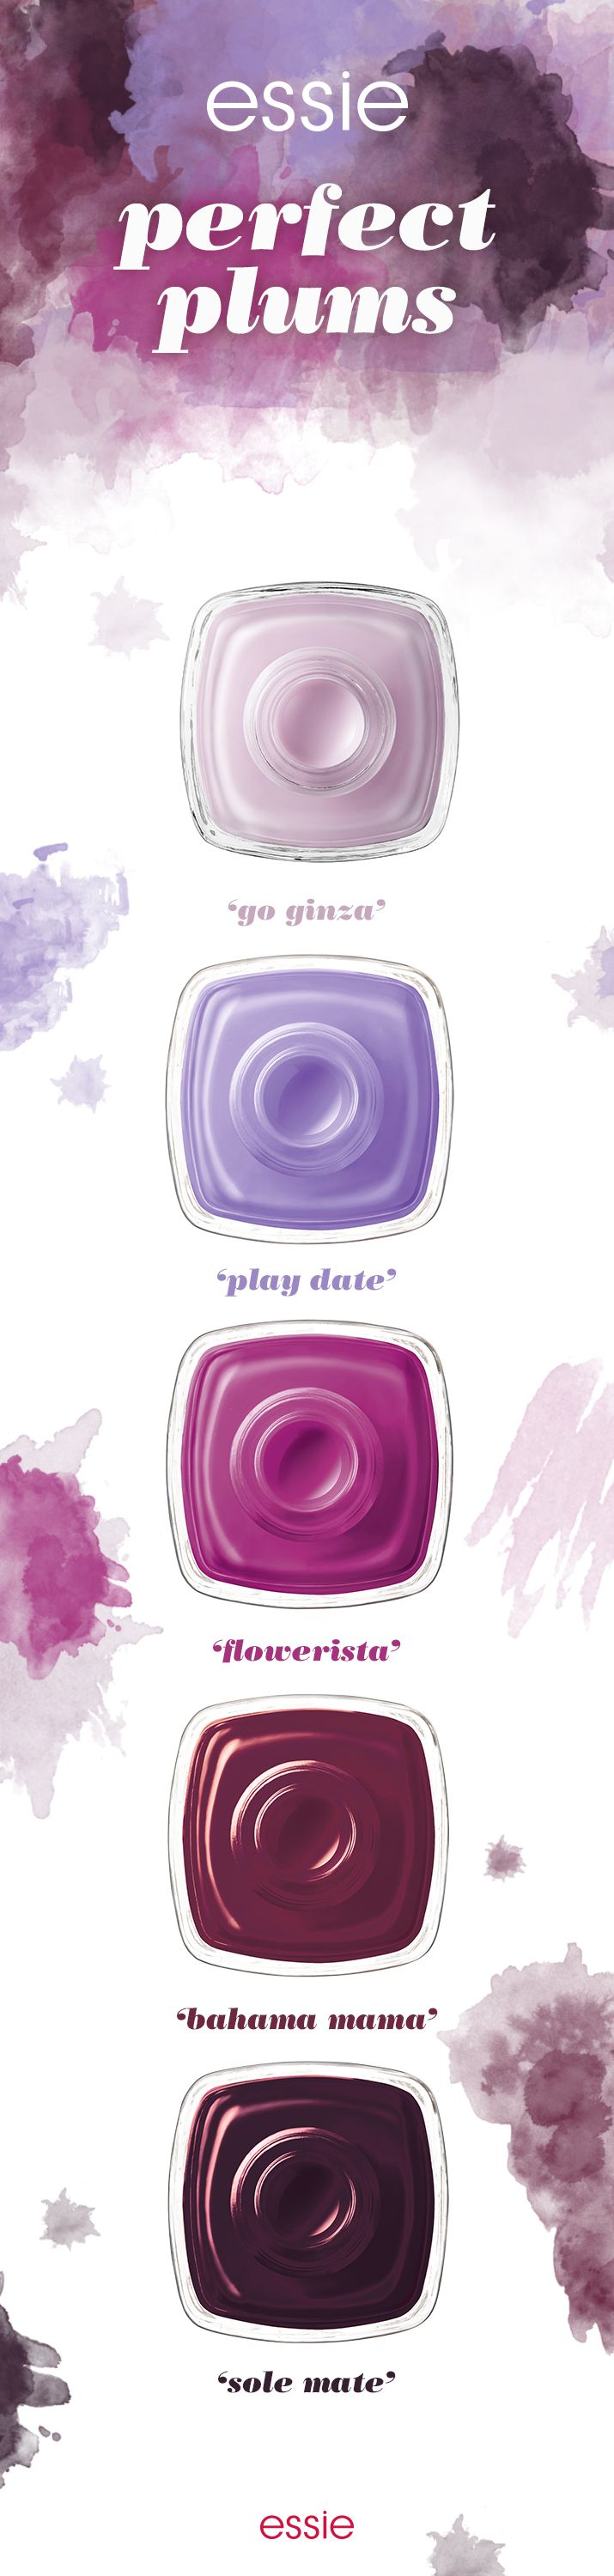 Fall for all the plum polishes this season. Make 'go ginza' your go to, play up purple with 'play date, turn into a 'flowerista', get the style of 'bahama mama' or feel the warmth of 'sole mate'. Any of these essie nail polishes will paint your nails in plum perfection.